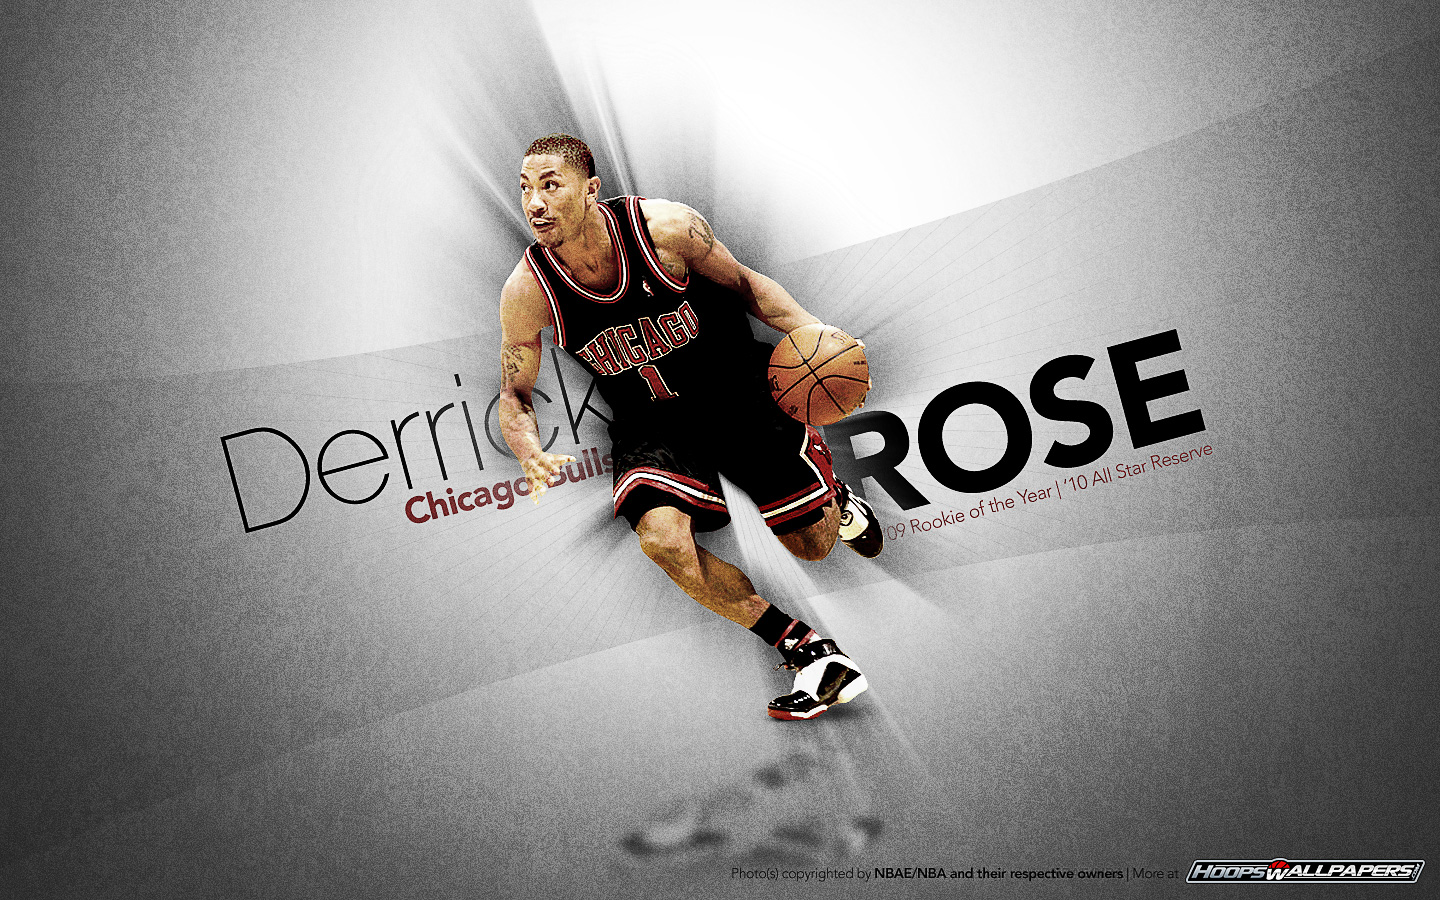 Derrick Rose wallpapers Derrick Rose background 1440x900